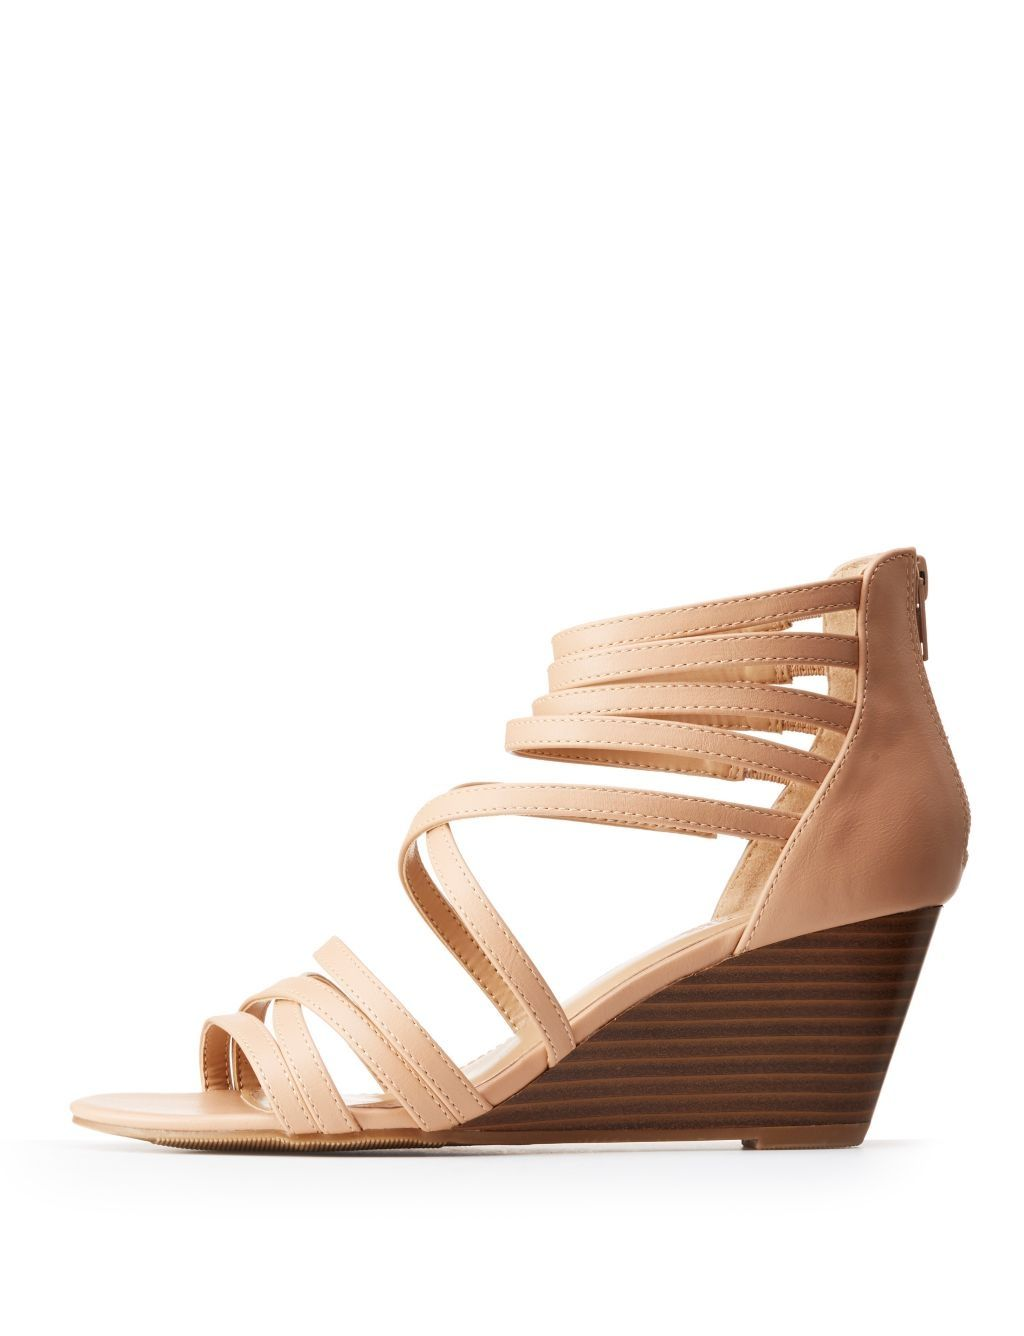 659791970366 Charlotte Russe Strappy Crisscross Wedge Sandals